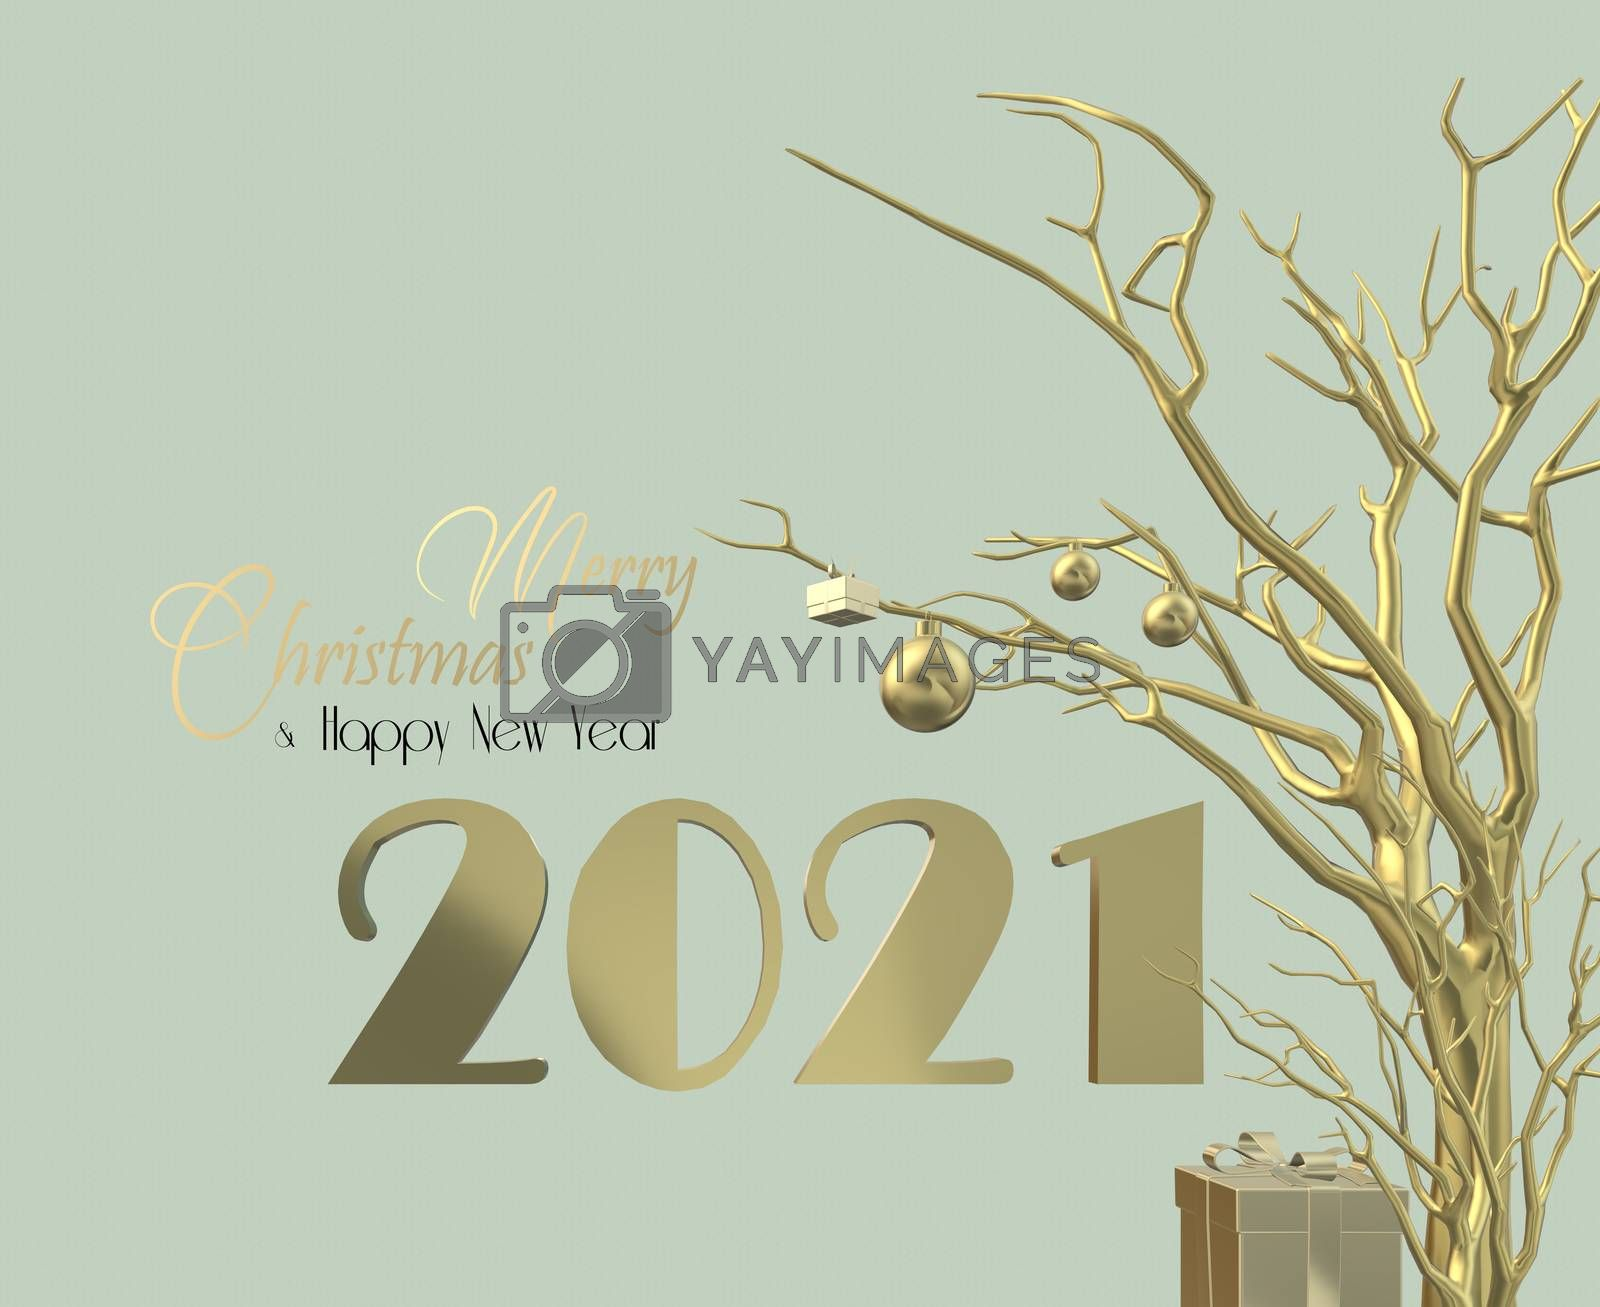 Happy New Year 2021 design. Gold arrangement of digit 2021, Christmas decoration hanging on gold tree over pistachio geen pastel background. Text Merry Christmas Happy New Year, 3D illustration